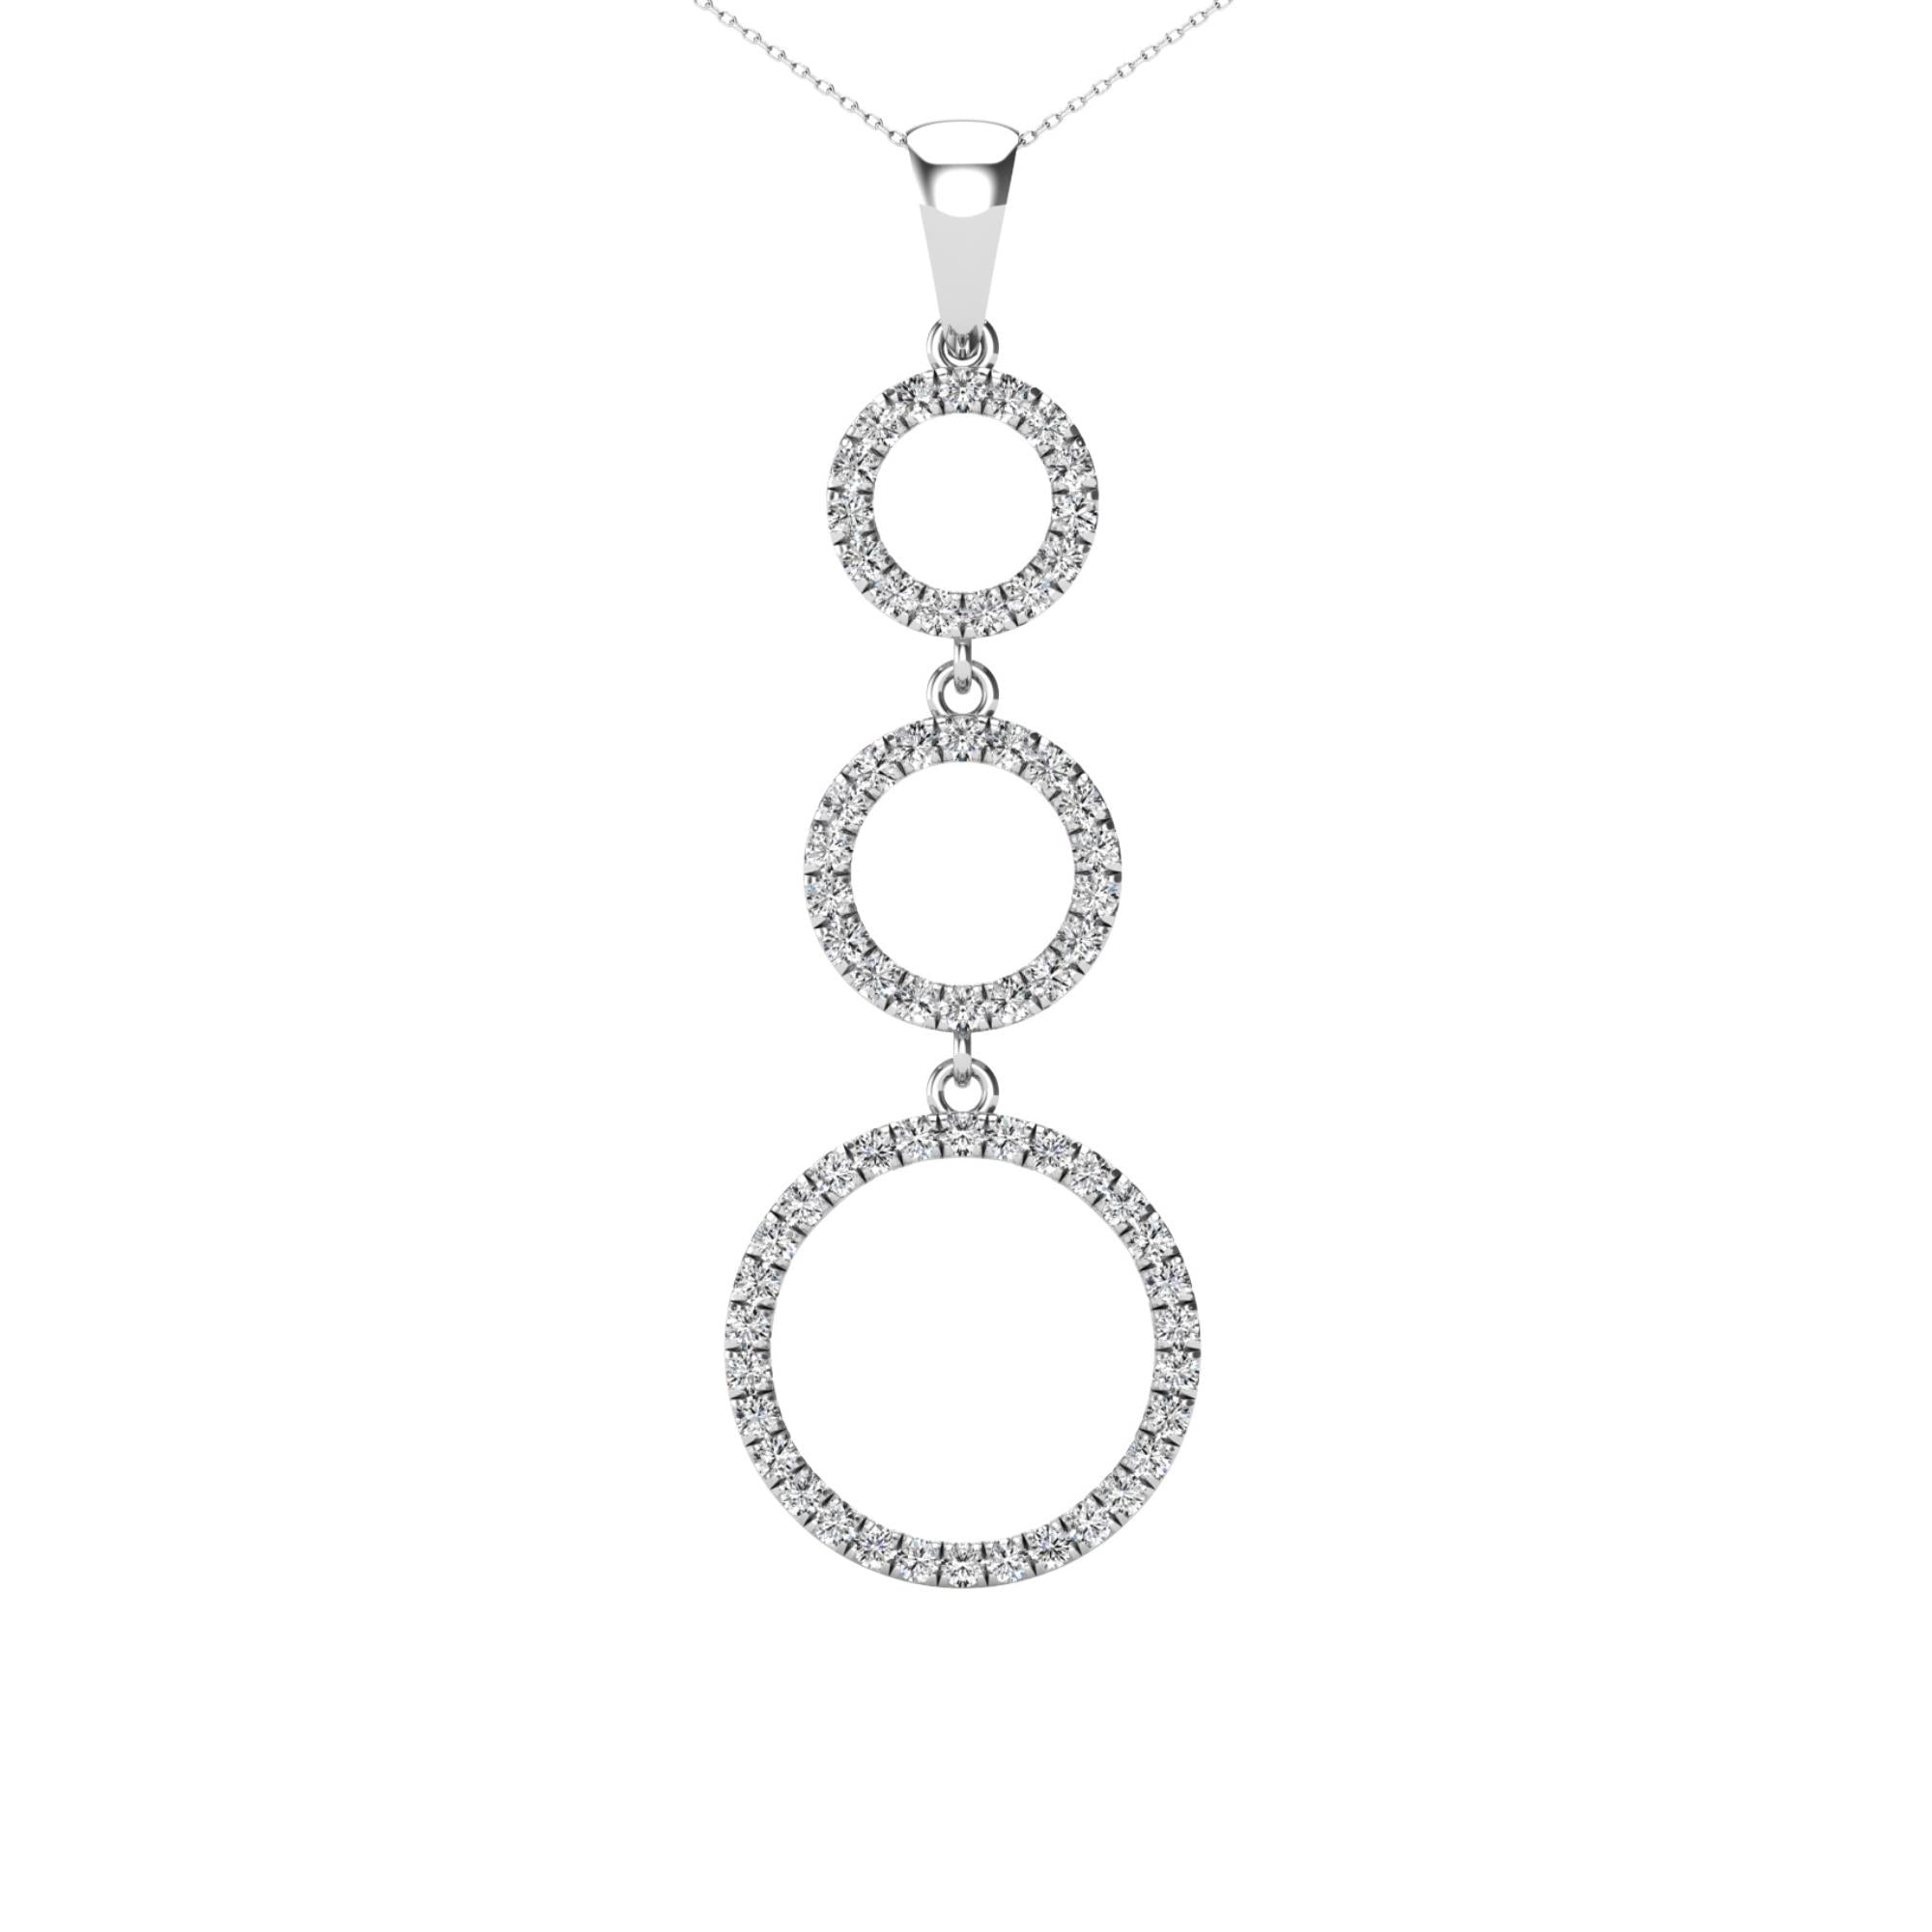 14Kt White Gold 0.25 Ct Genuine Natural Diamond Past Present Future Open Circle Design Pendant Necklace